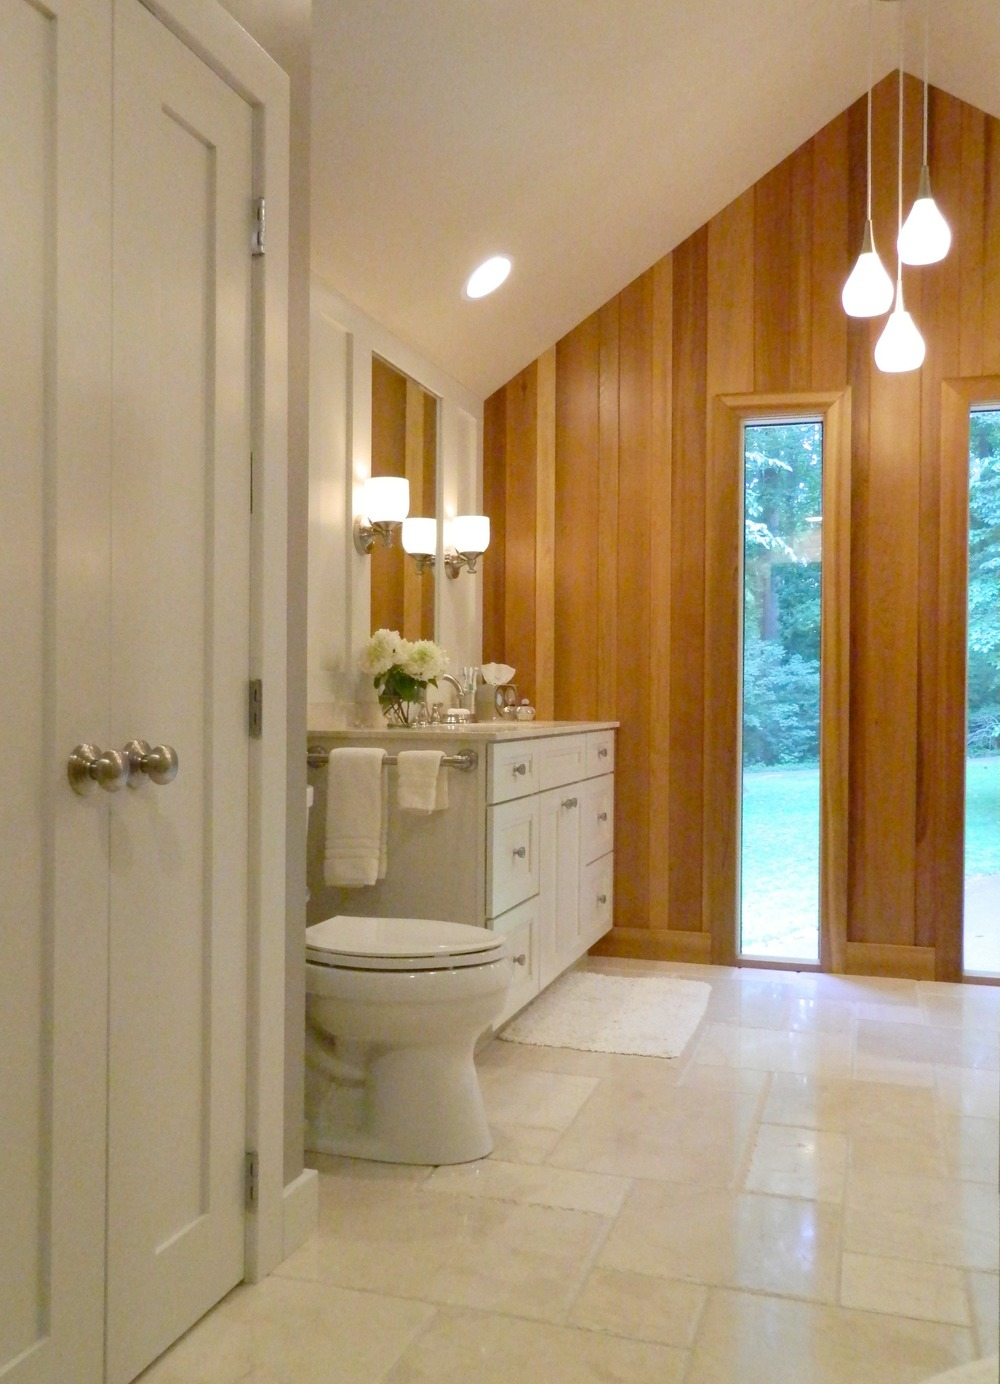 A spacious bathroom.  Something that perhaps you could imagine in your home?